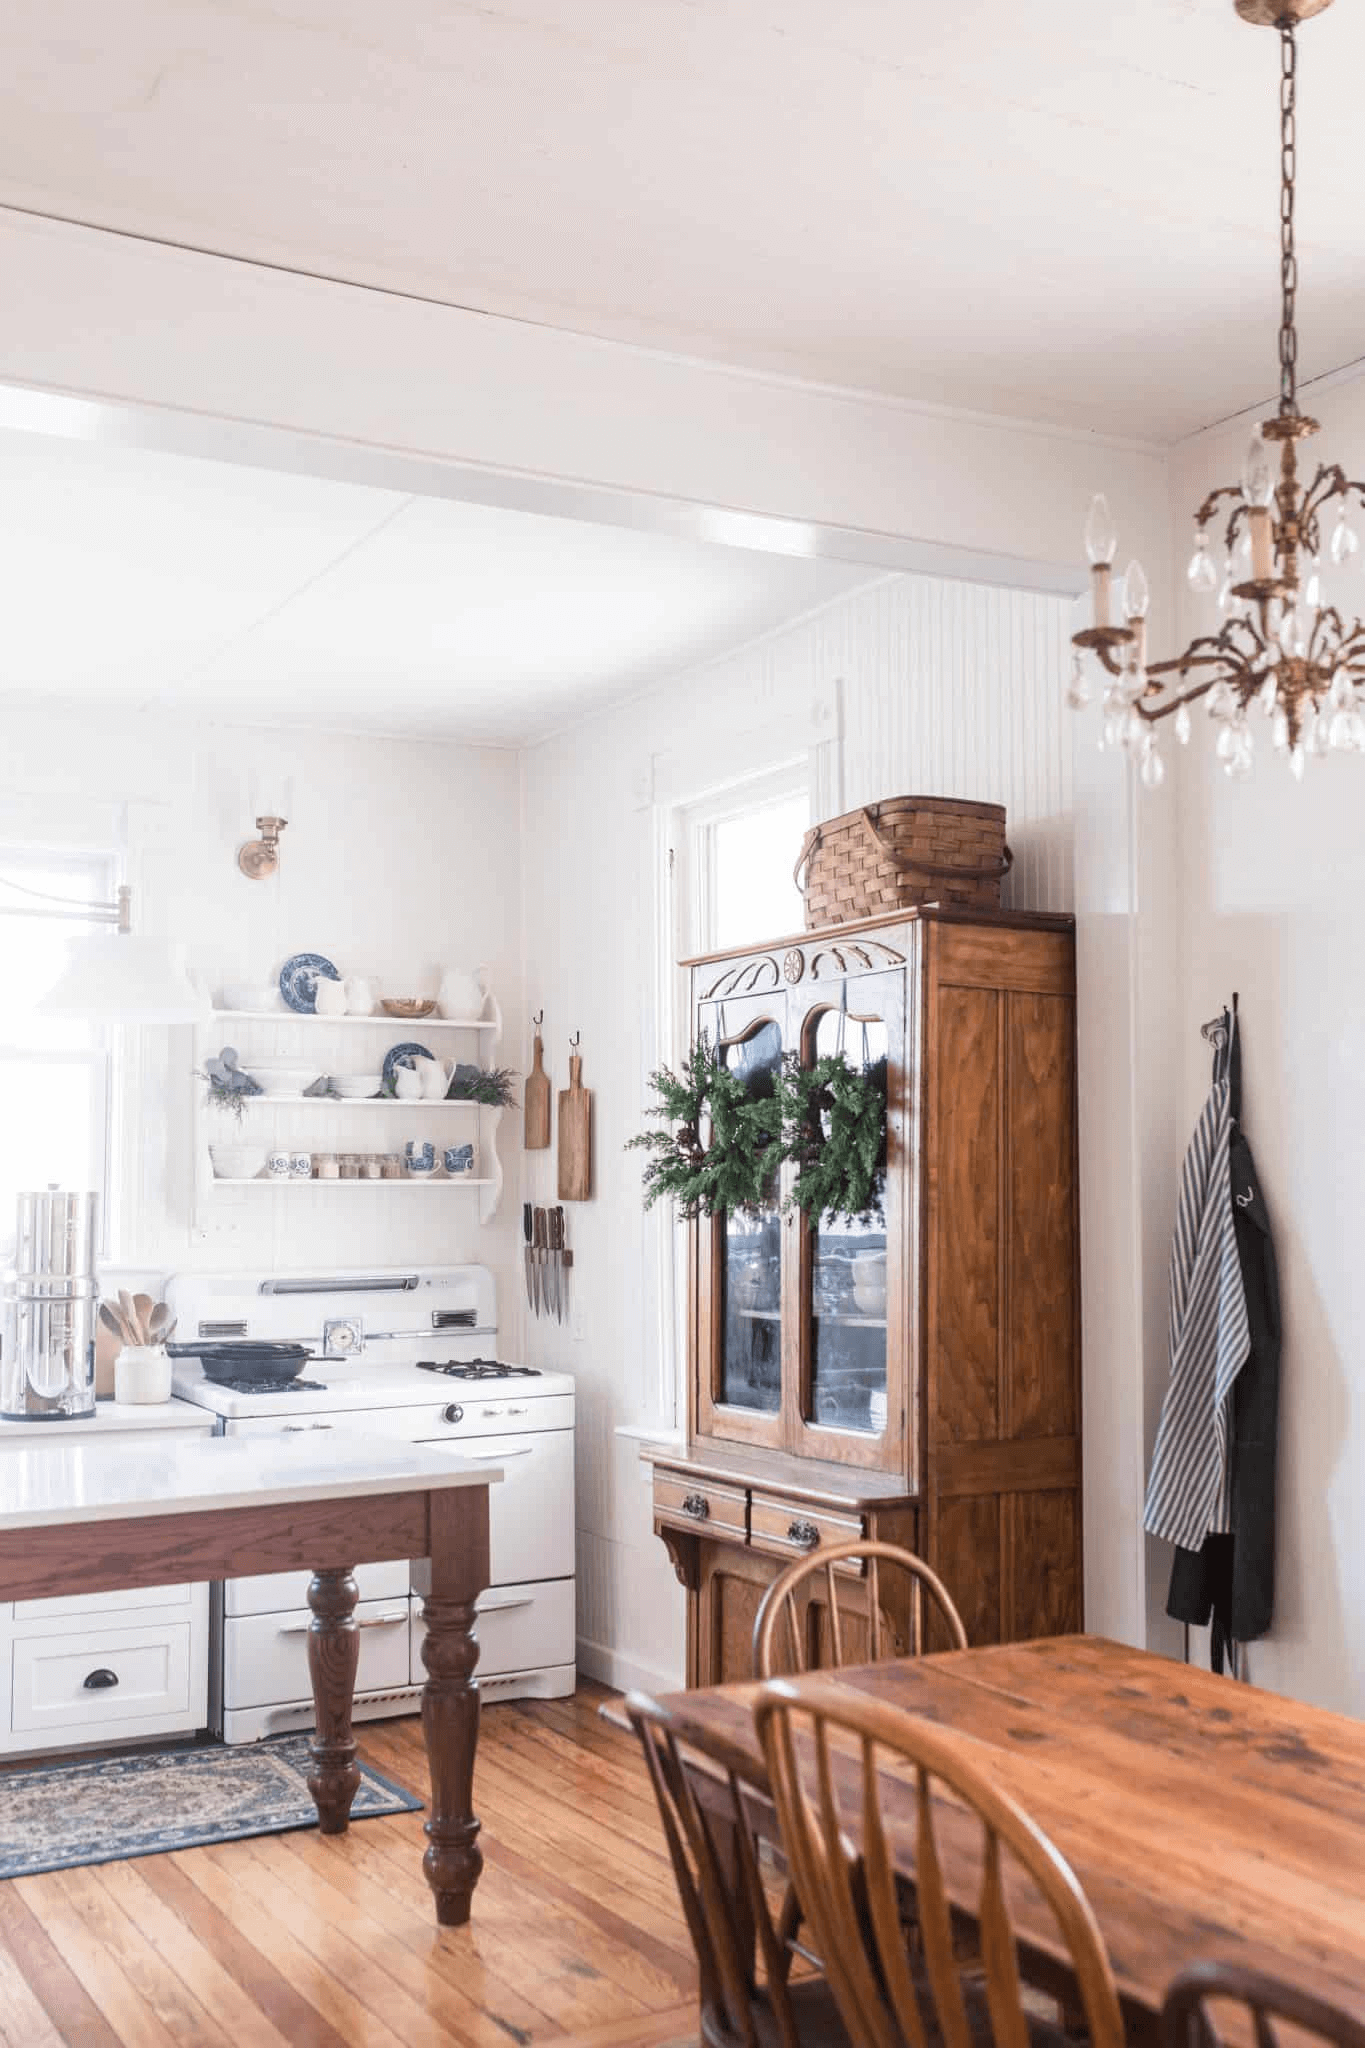 this is an example that farmhouse decor from the Farmhouse on Boone on Pinterest